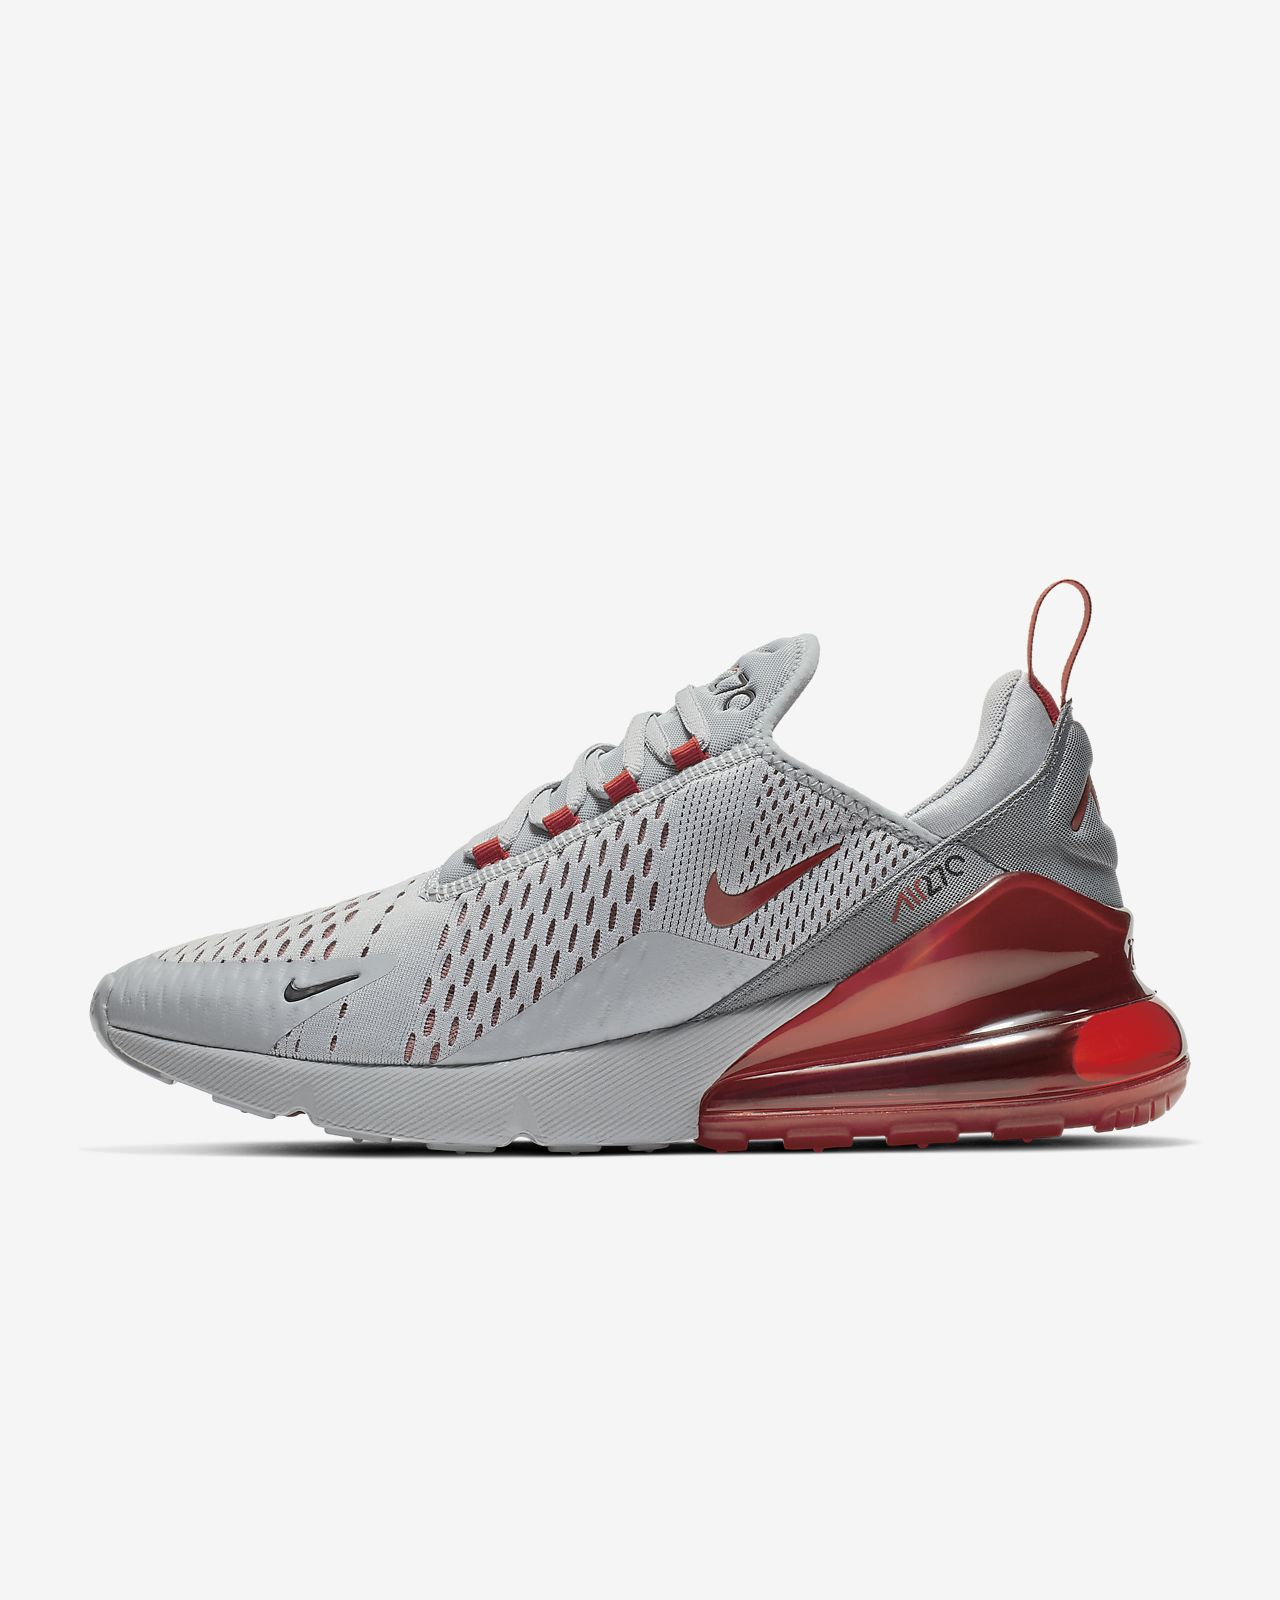 meet 45511 b2df1 Men s Shoe. Nike Air Max 270